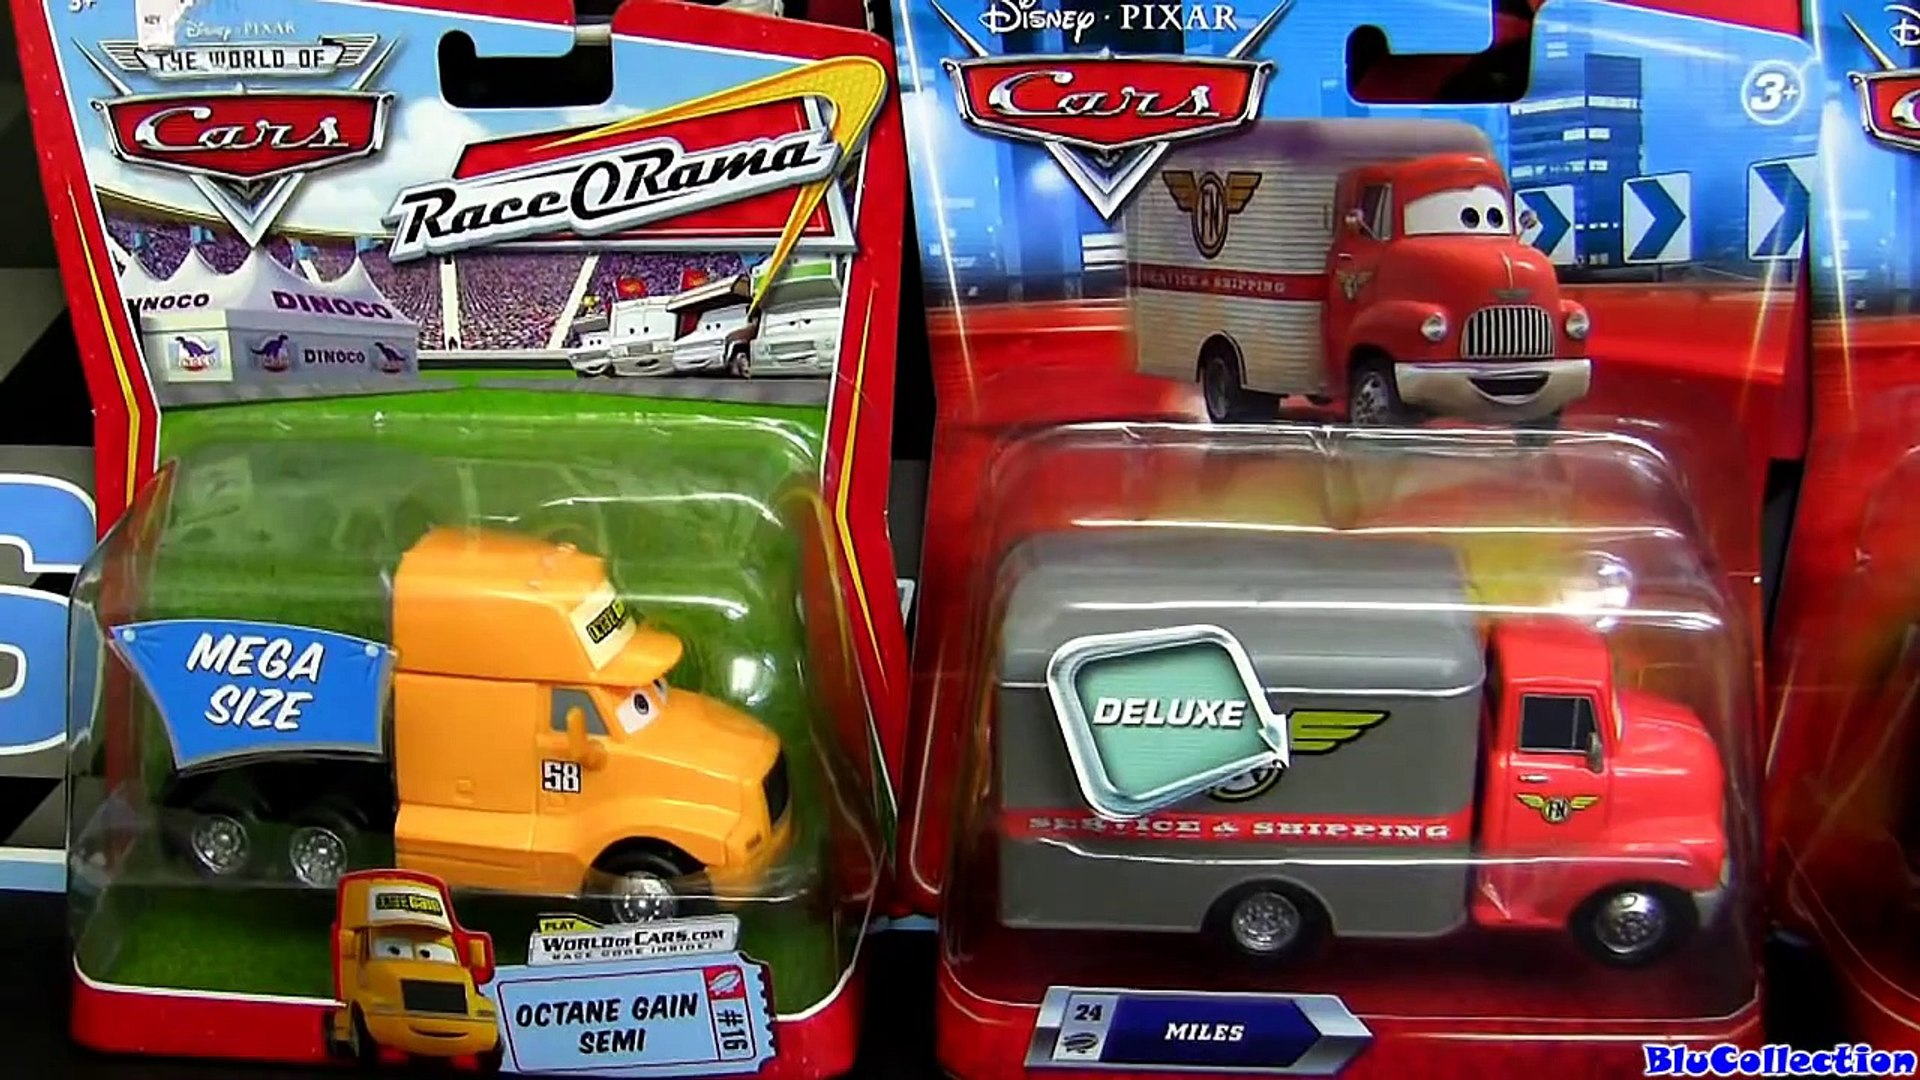 Disney Cars Elvis Presley RV AND Miles Leroy Traffik with Snow Tires Diecasts car-toys review